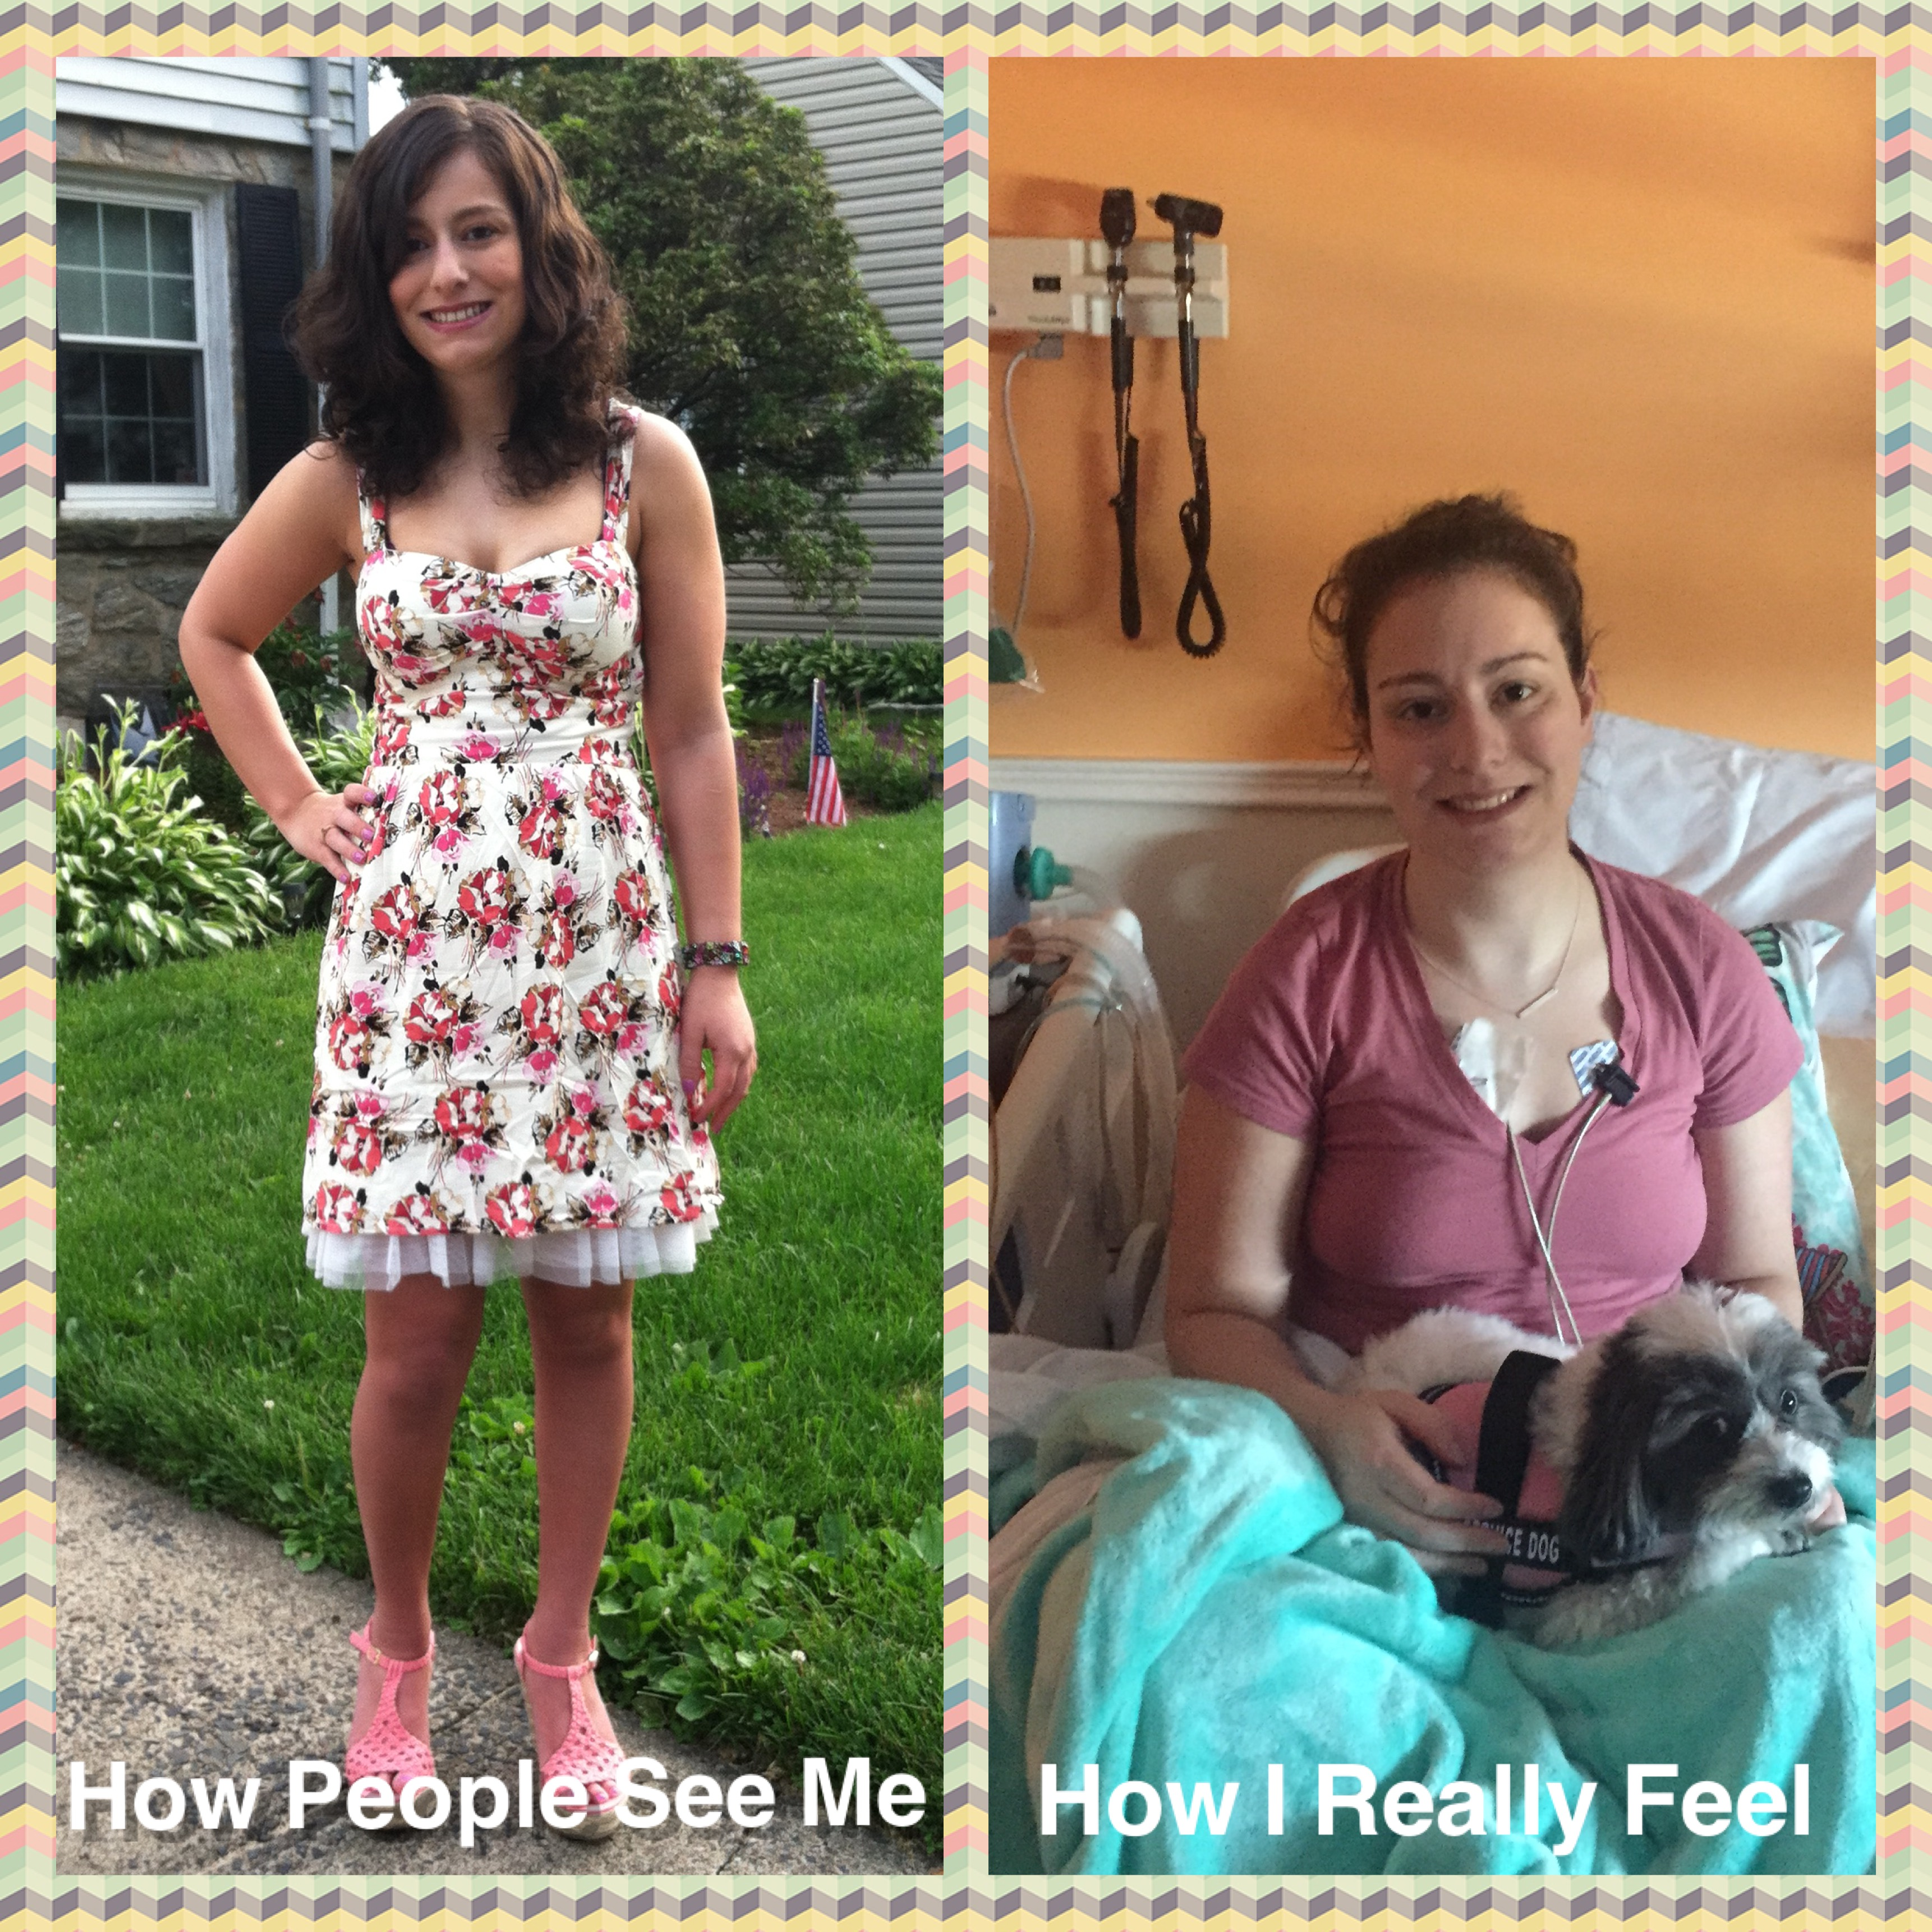 Two photos of the writer - the one to the left of her in a sundress, the one to the right of her at the hospital, not feeling well.